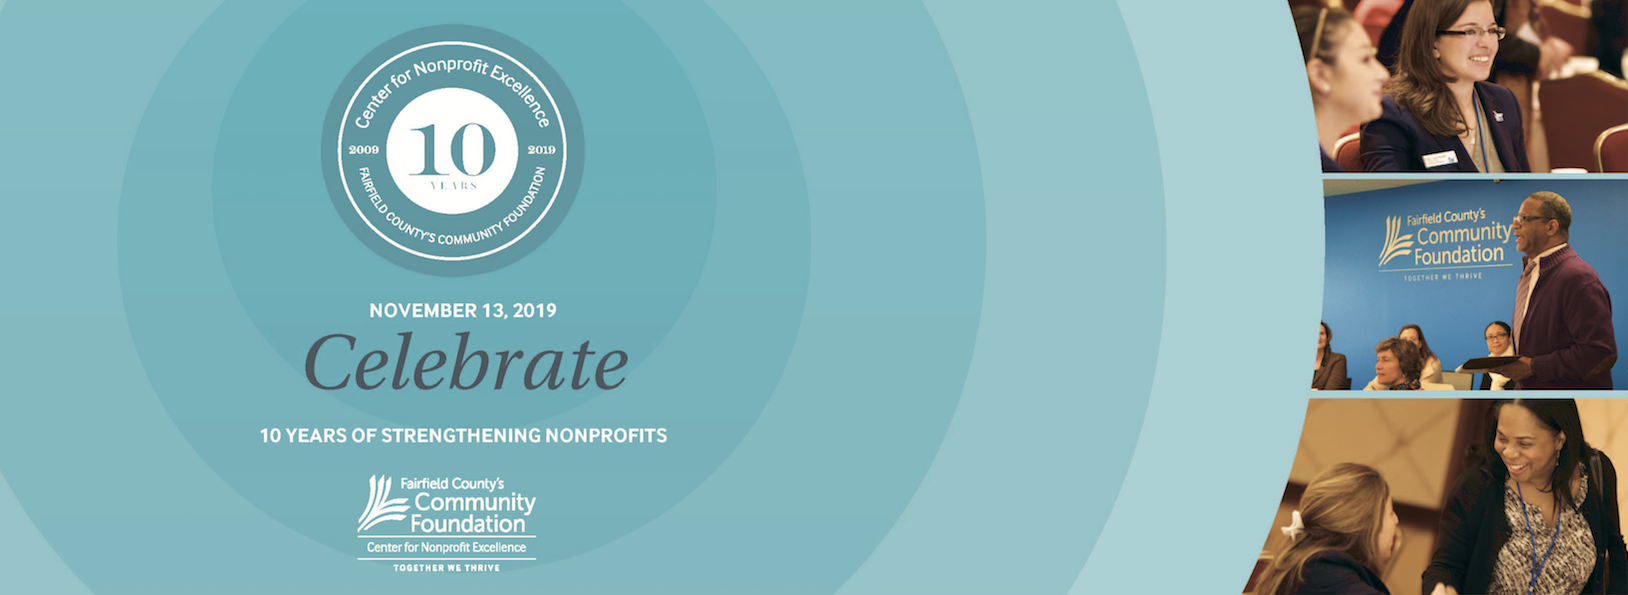 Read here in a previous blog post  about Carver being named among the first class of inductees into the Center for Nonprofit Excellence Hall of Fame